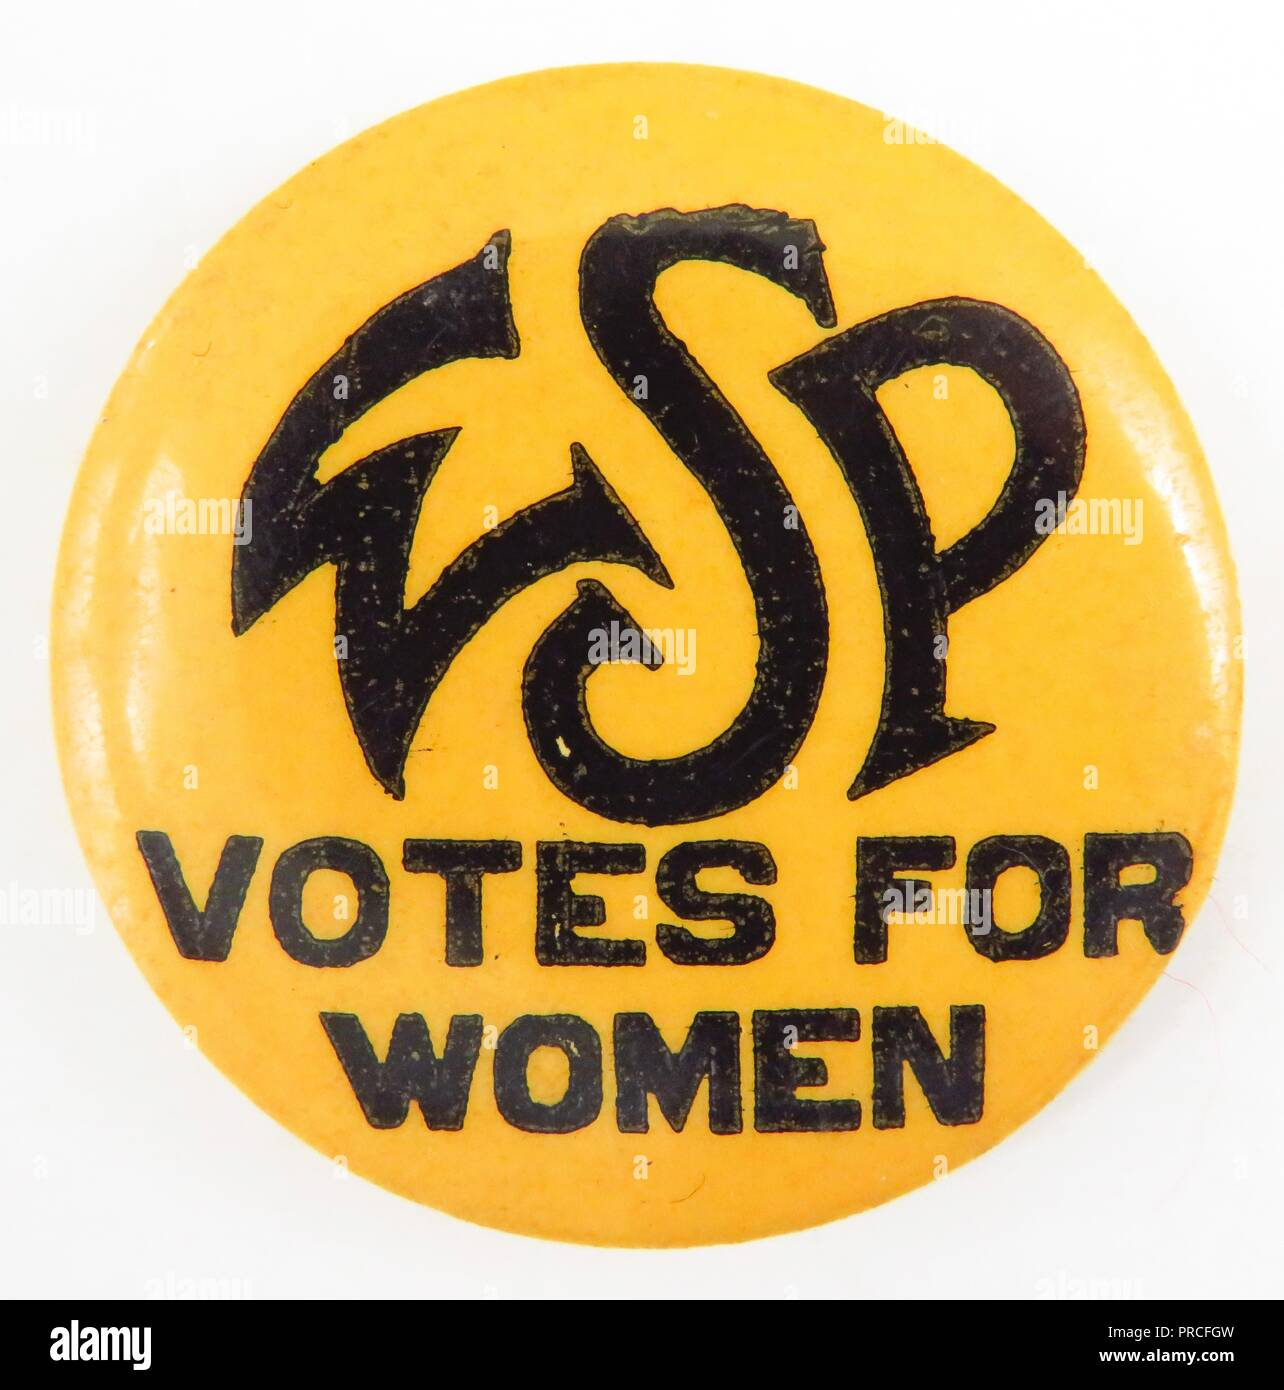 Yellow and black suffrage pin, with the text 'WSP Votes for Women, ' manufactured for the American market by the Woman Suffrage Party, a New York suffrage group headed by Carrie Chapman Catt, 1910. Photography by Emilia van Beugen. () - Stock Image